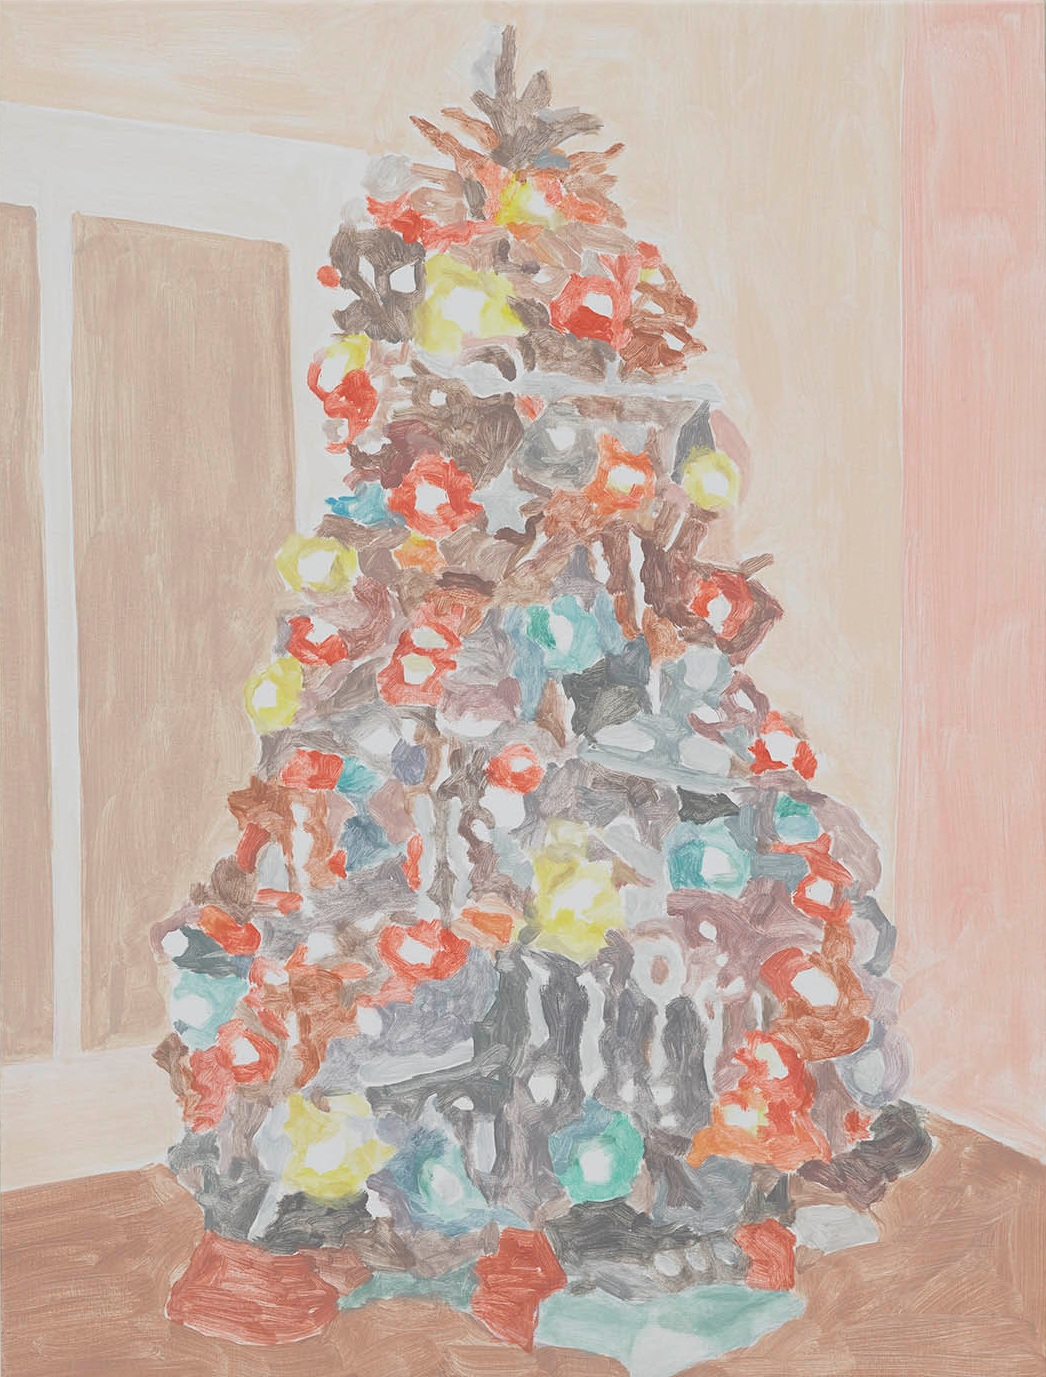 Xmas Tree (flower lights), acrylic on canvas, 32 x 24.25 inches, 2016.